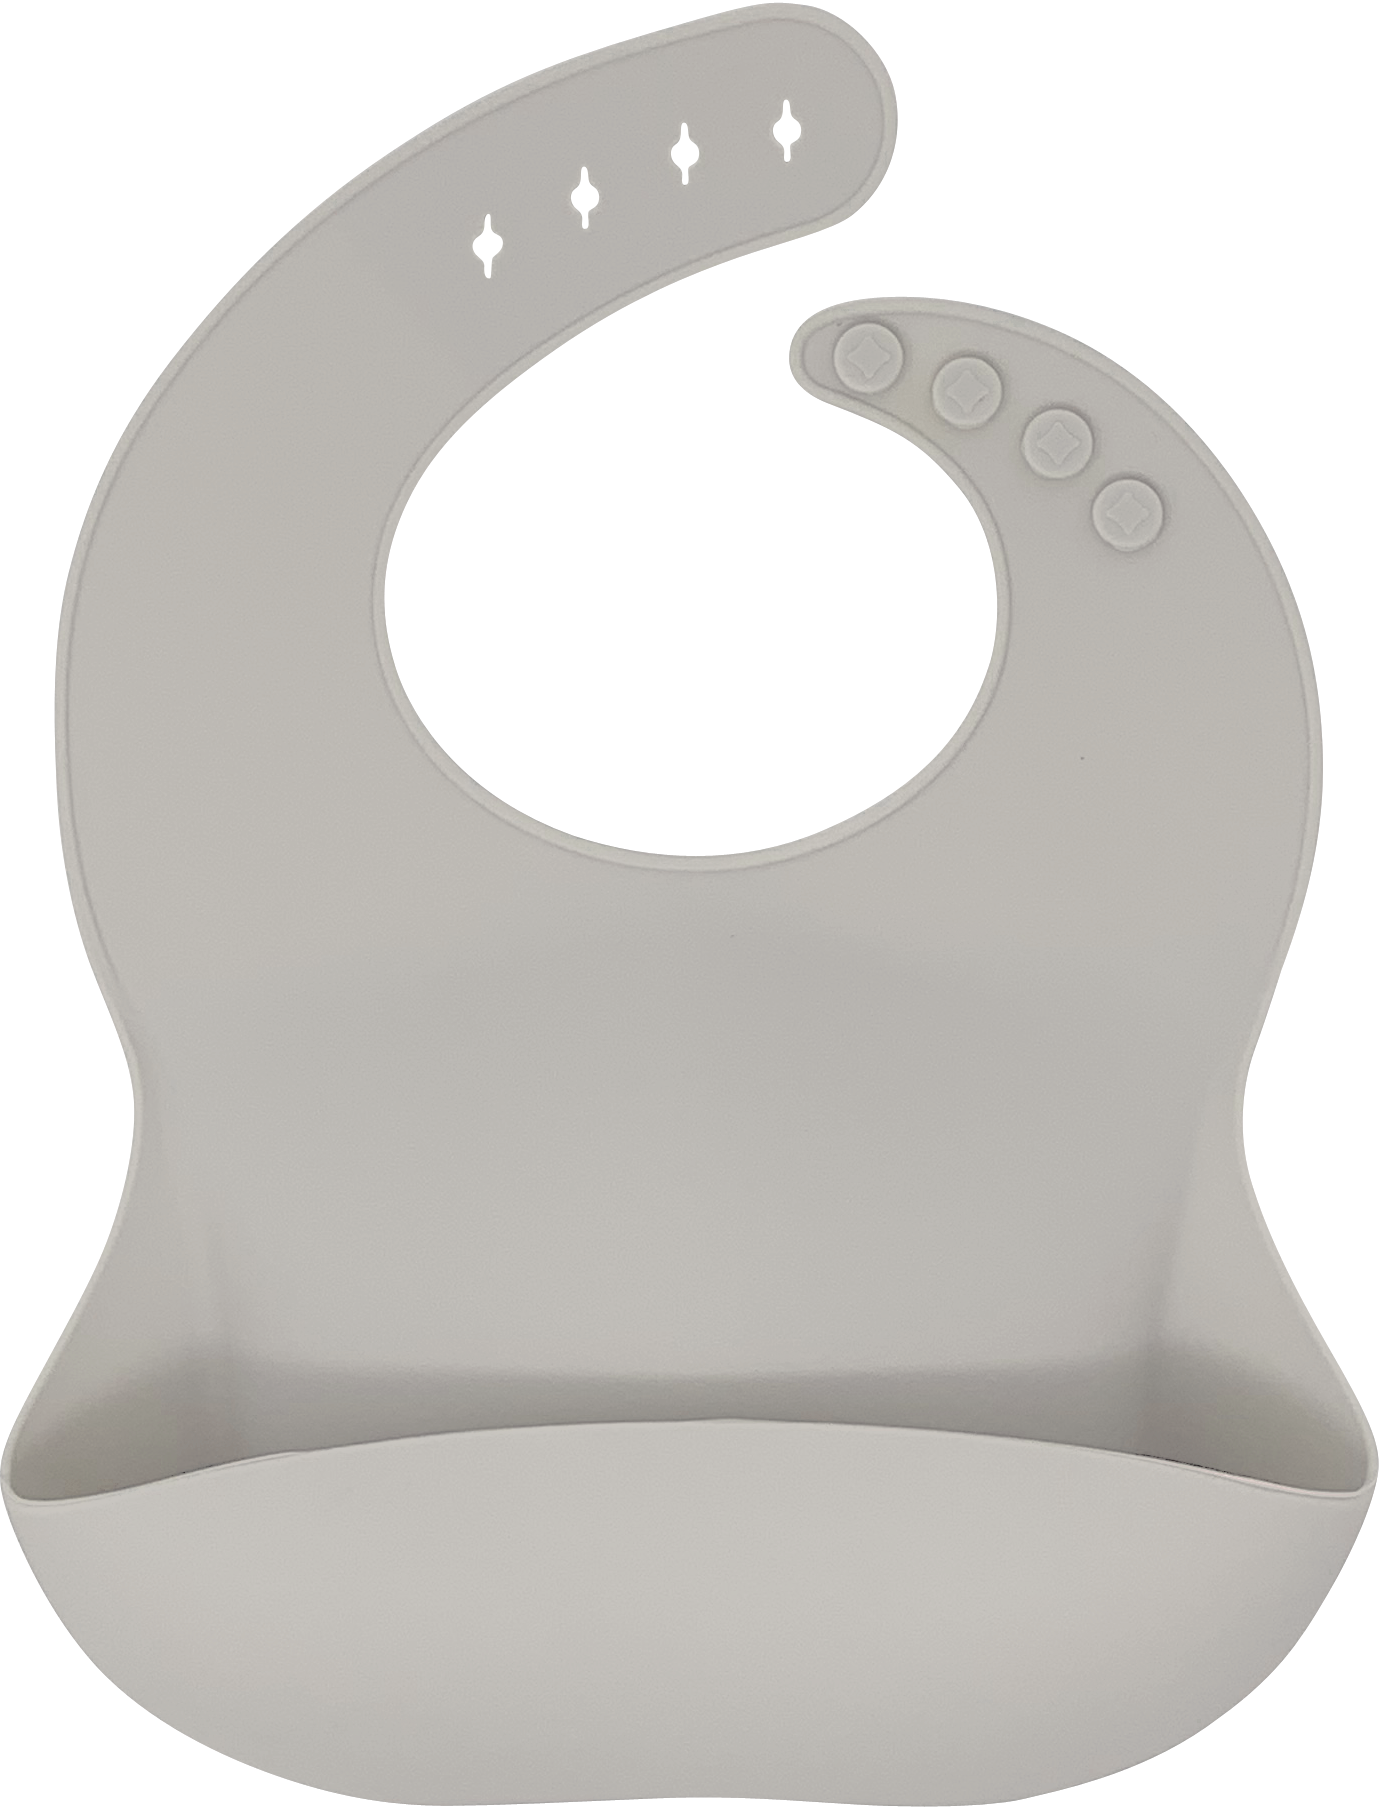 bibito silicone bib in biscuit (light beige)